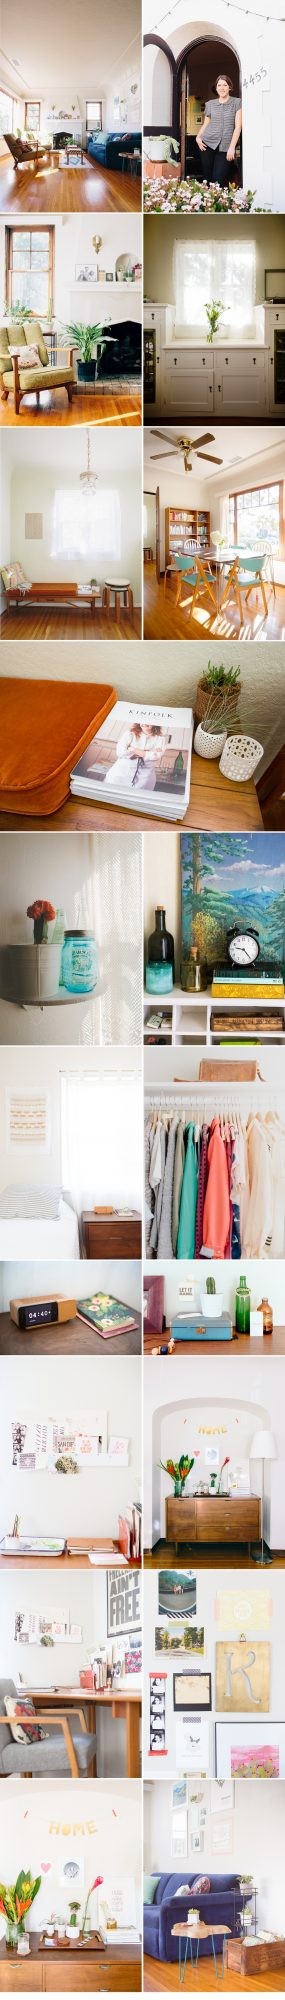 The Everygirl Home Tour: Katie Hart